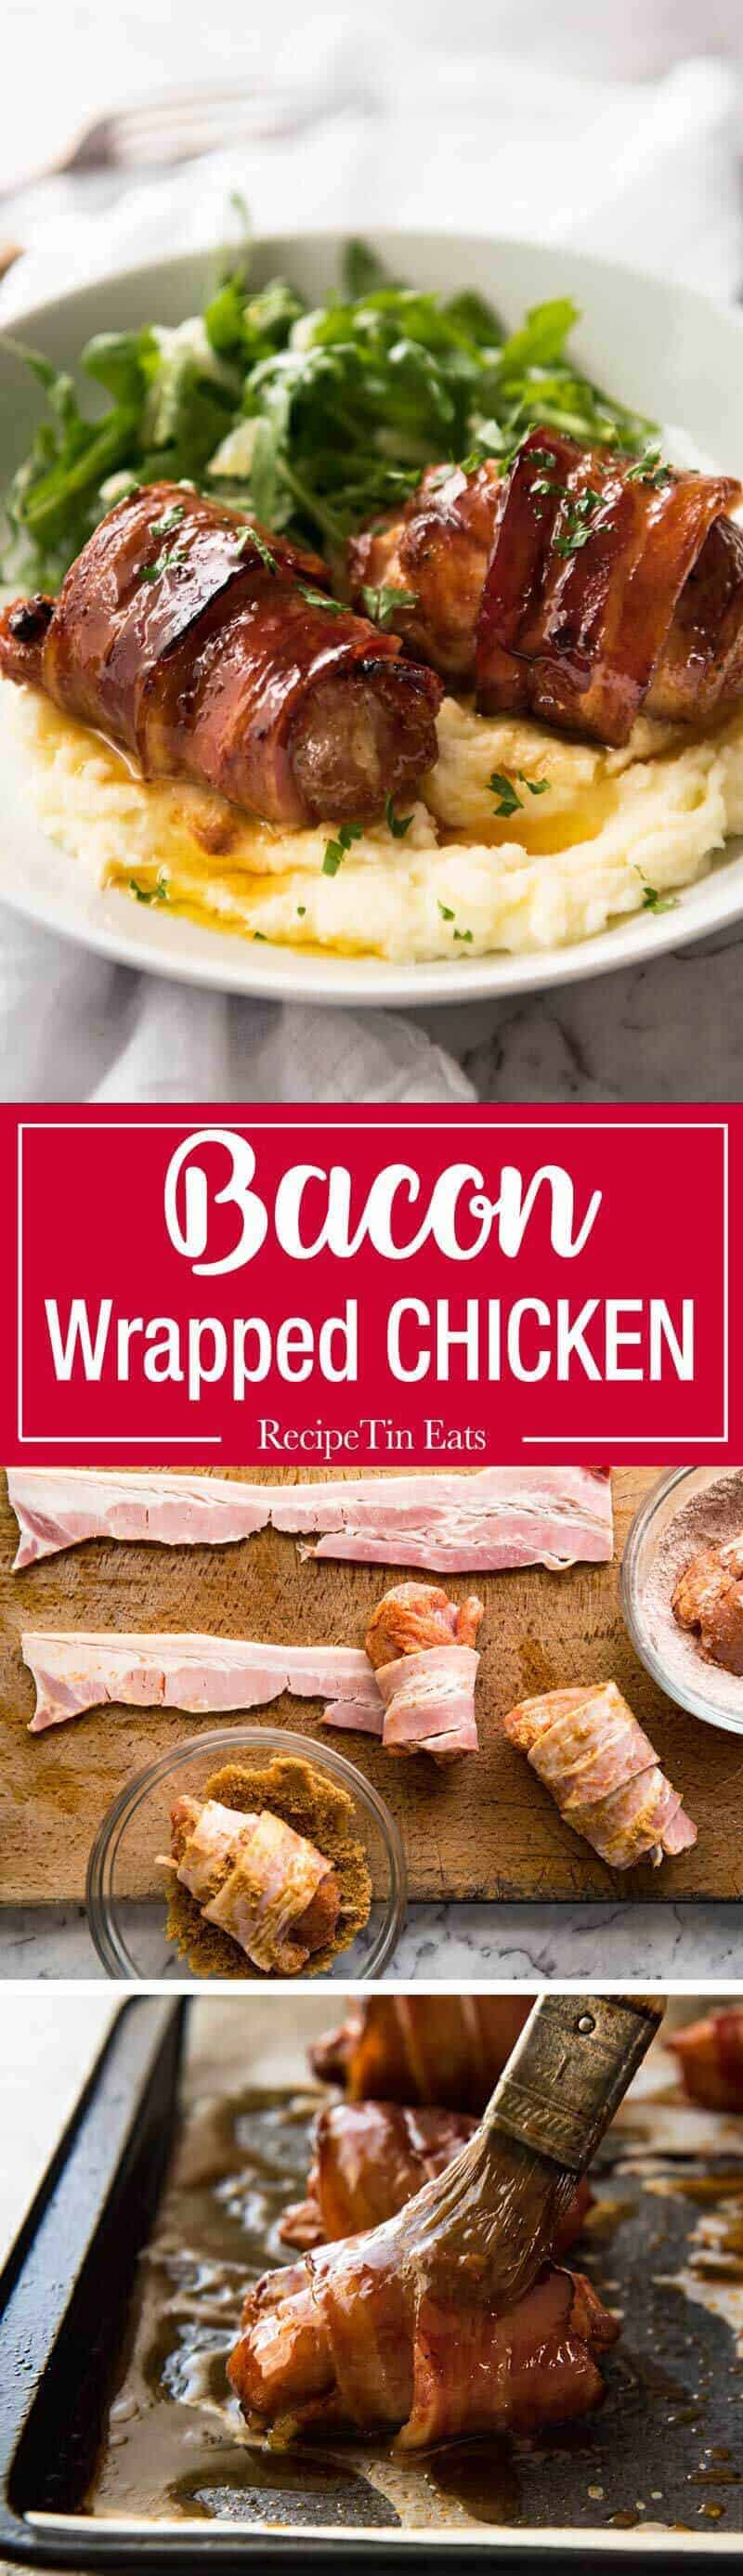 Bacon Wrapped Chicken - A spectacular way to dress up chicken with just a few simple ingredients! Brown sugar is the key to creating a gorgeous glaze on the bacon. www.recipetineats.com